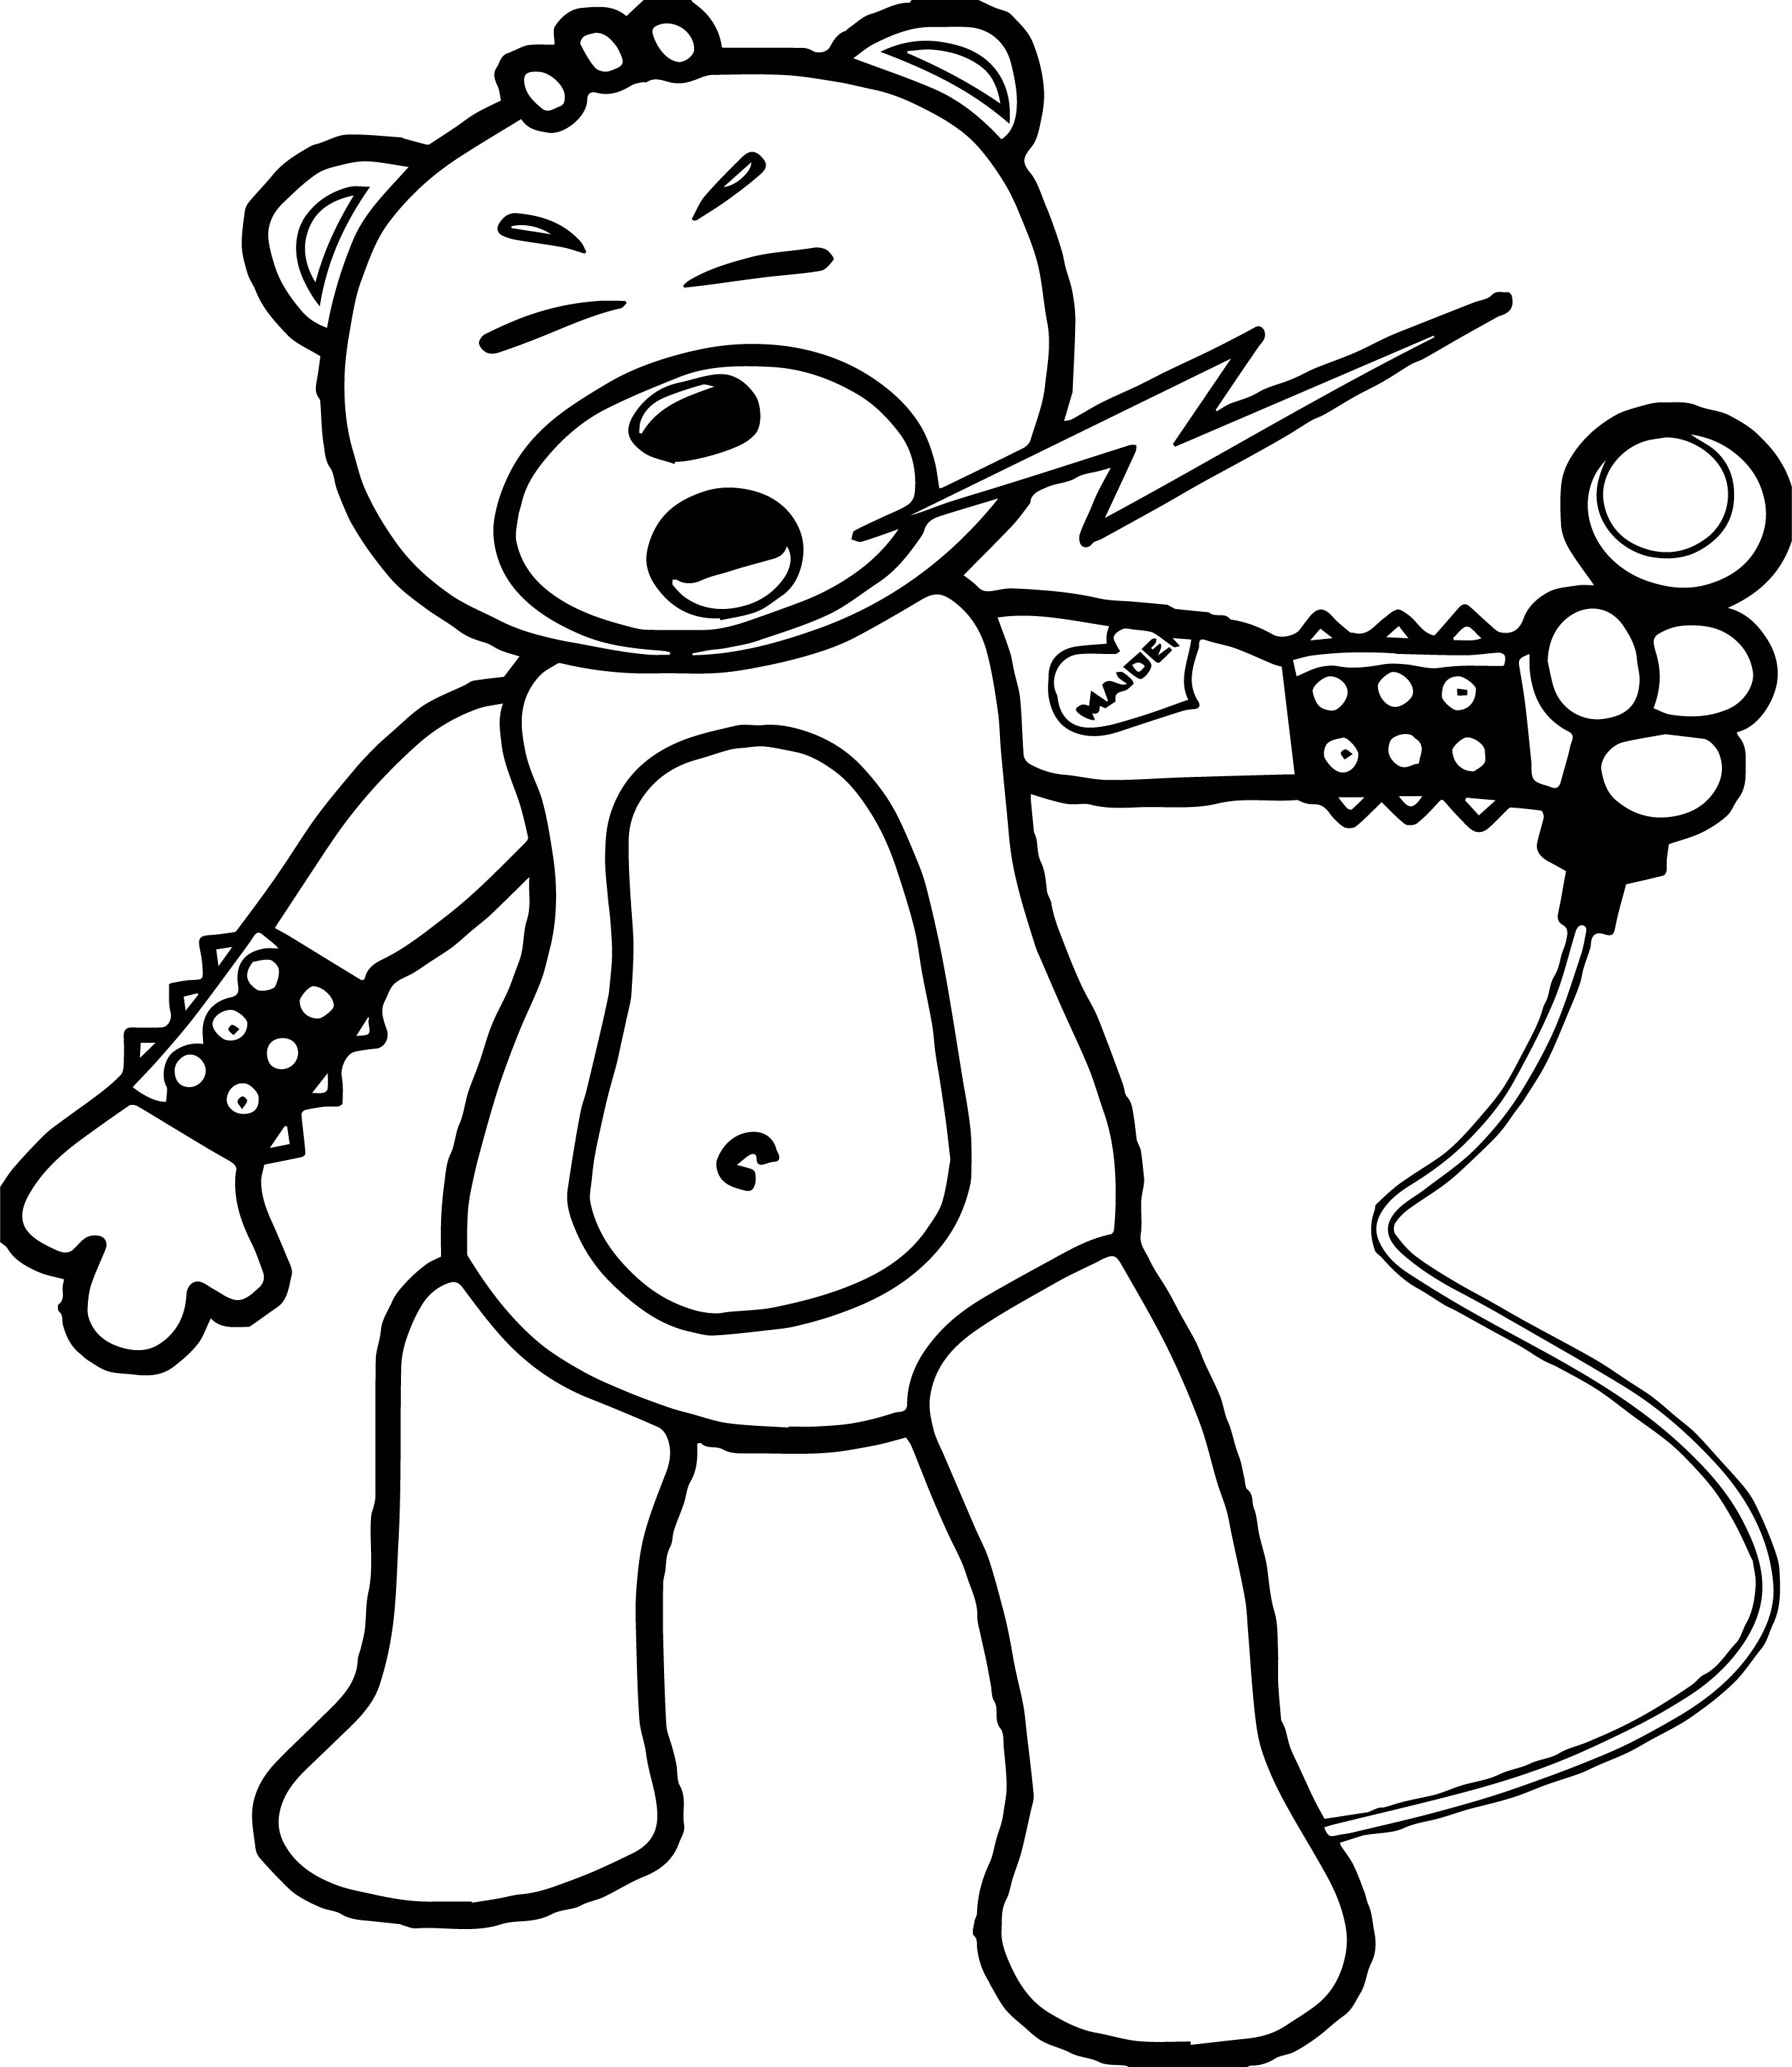 singer coloring pages - bear rock singer coloring page